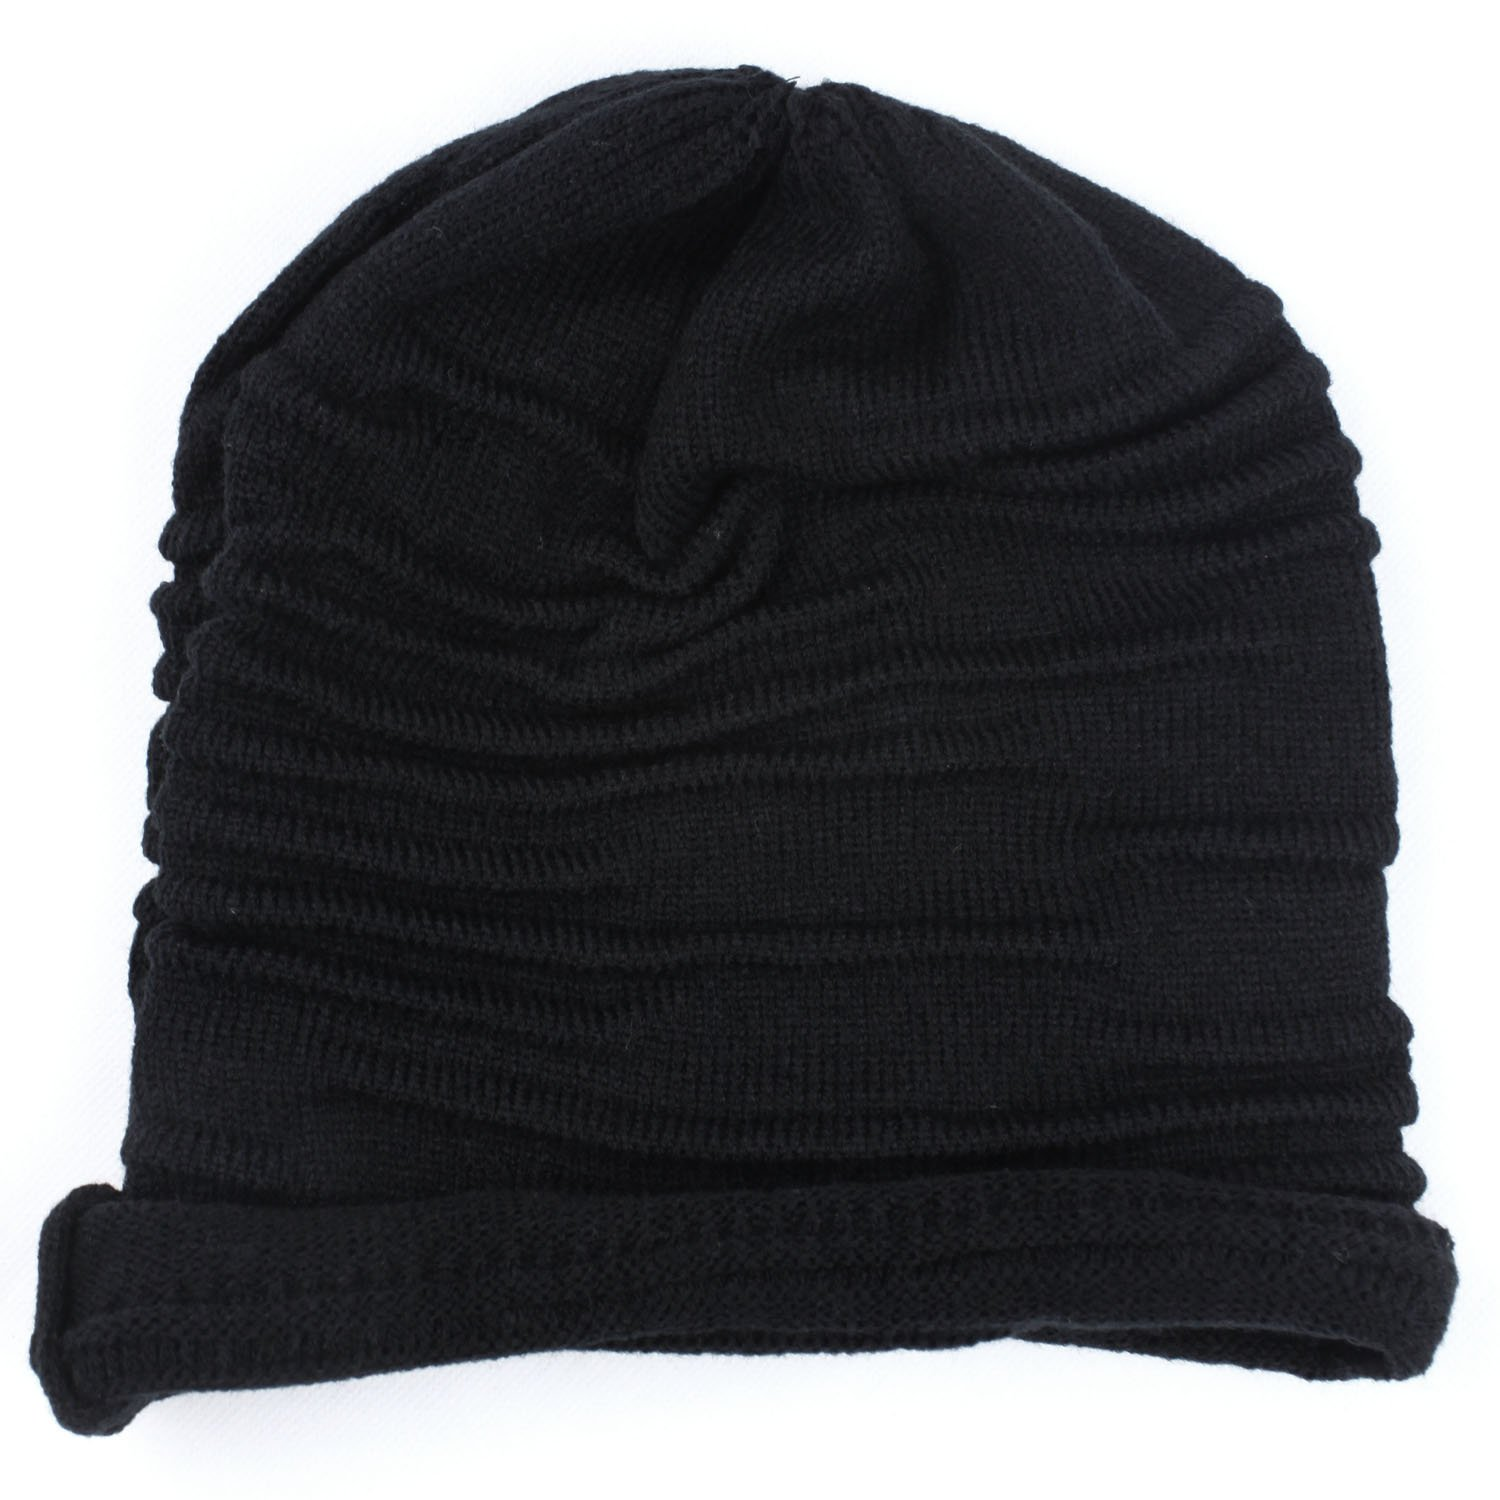 Winter Unisex Plicate Baggy Beanie Knit Crochet Ski Hat Oversized Slouch Cap Black hot sale unisex winter plicate baggy beanie knit crochet ski hat cap